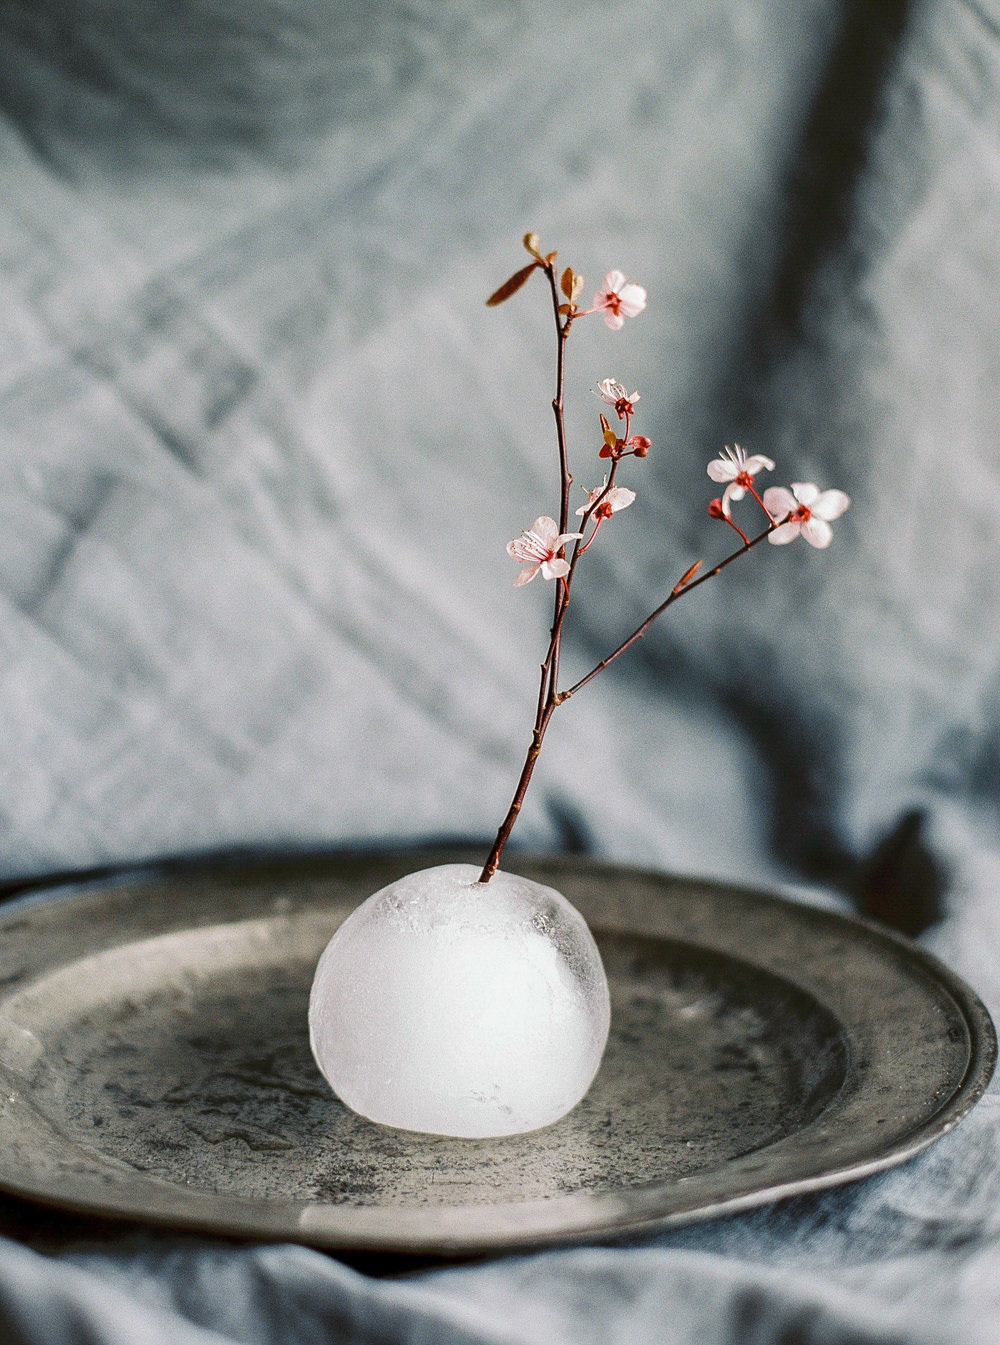 Ice vase with blossom